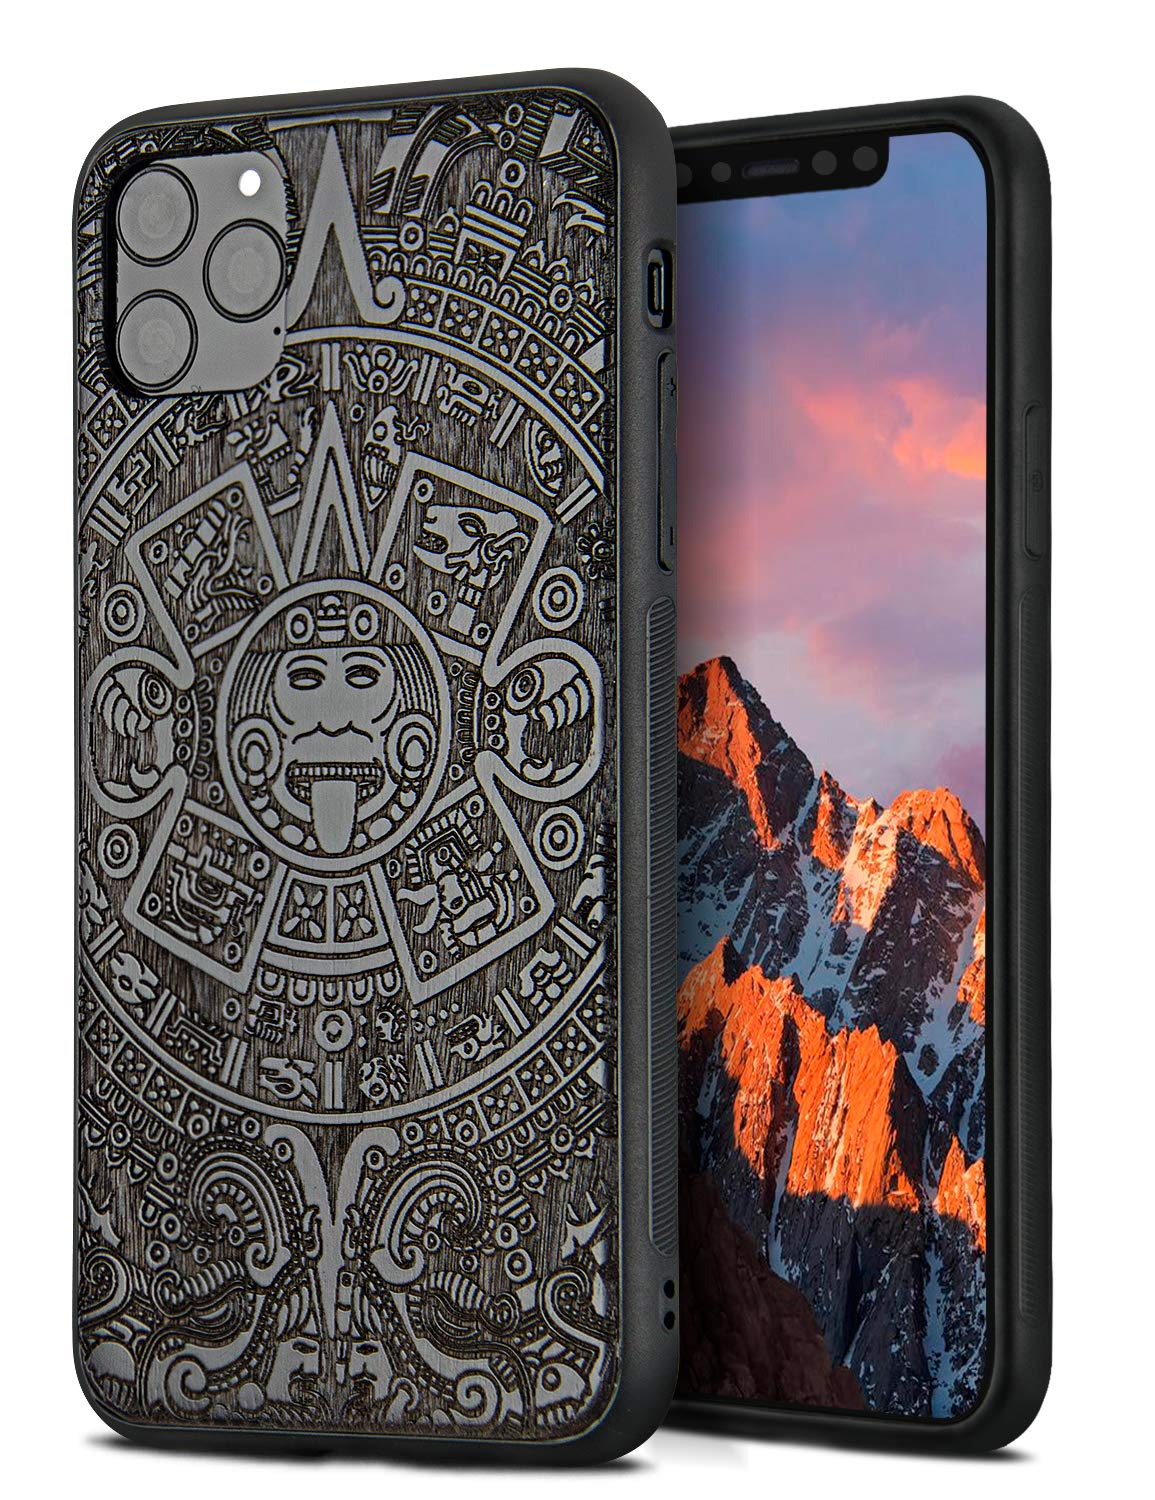 YFWOOD Compatible for iPhone 11 Pro Case 5.8 inch, Unique Wood Shockproof Drop Proof Bumper Protection Cover for iPhone 11 Pro (Totem)